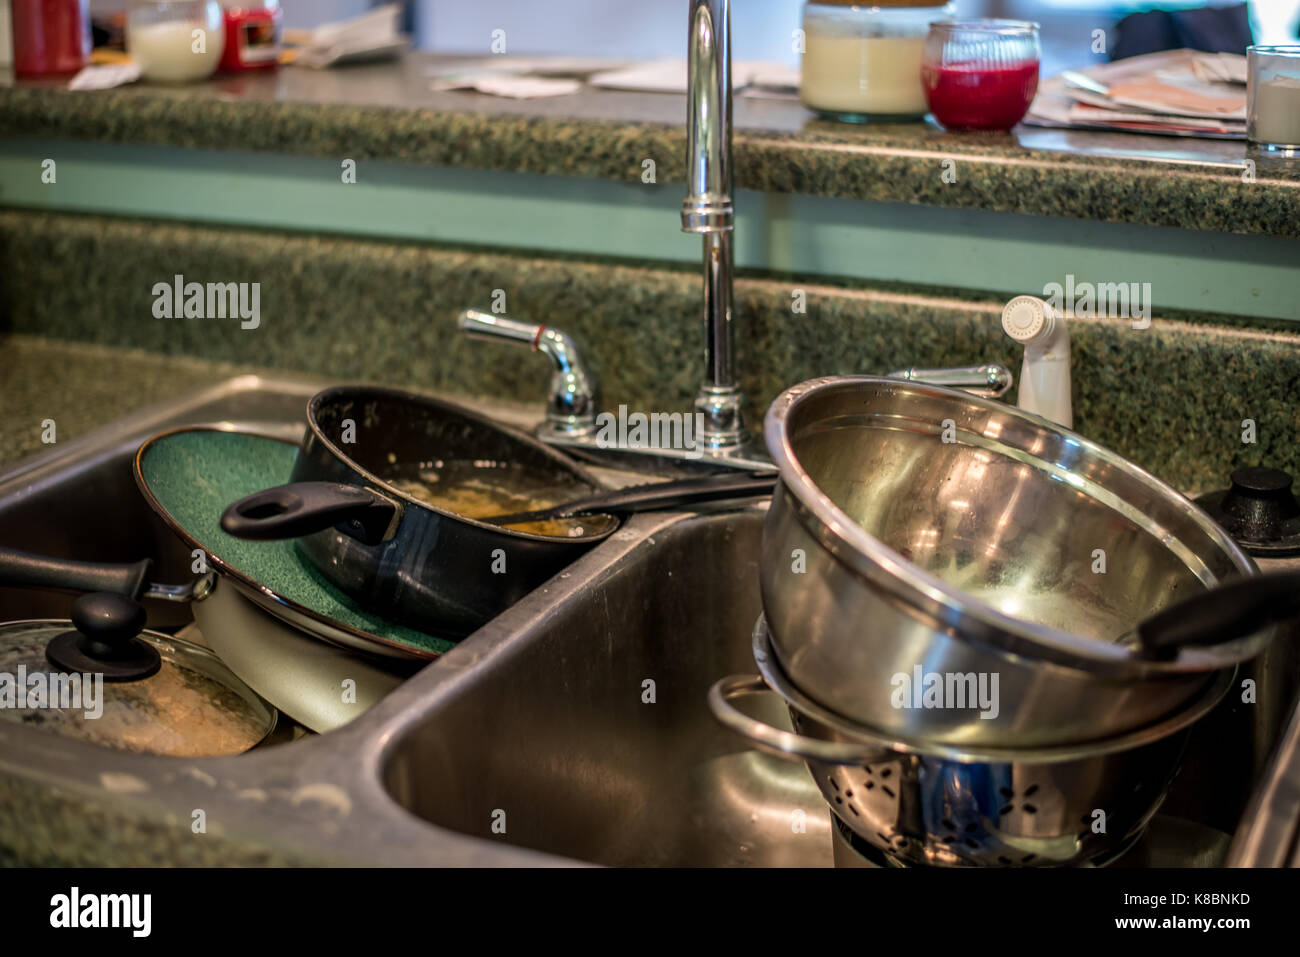 dirty dishes in the sink - Stock Image